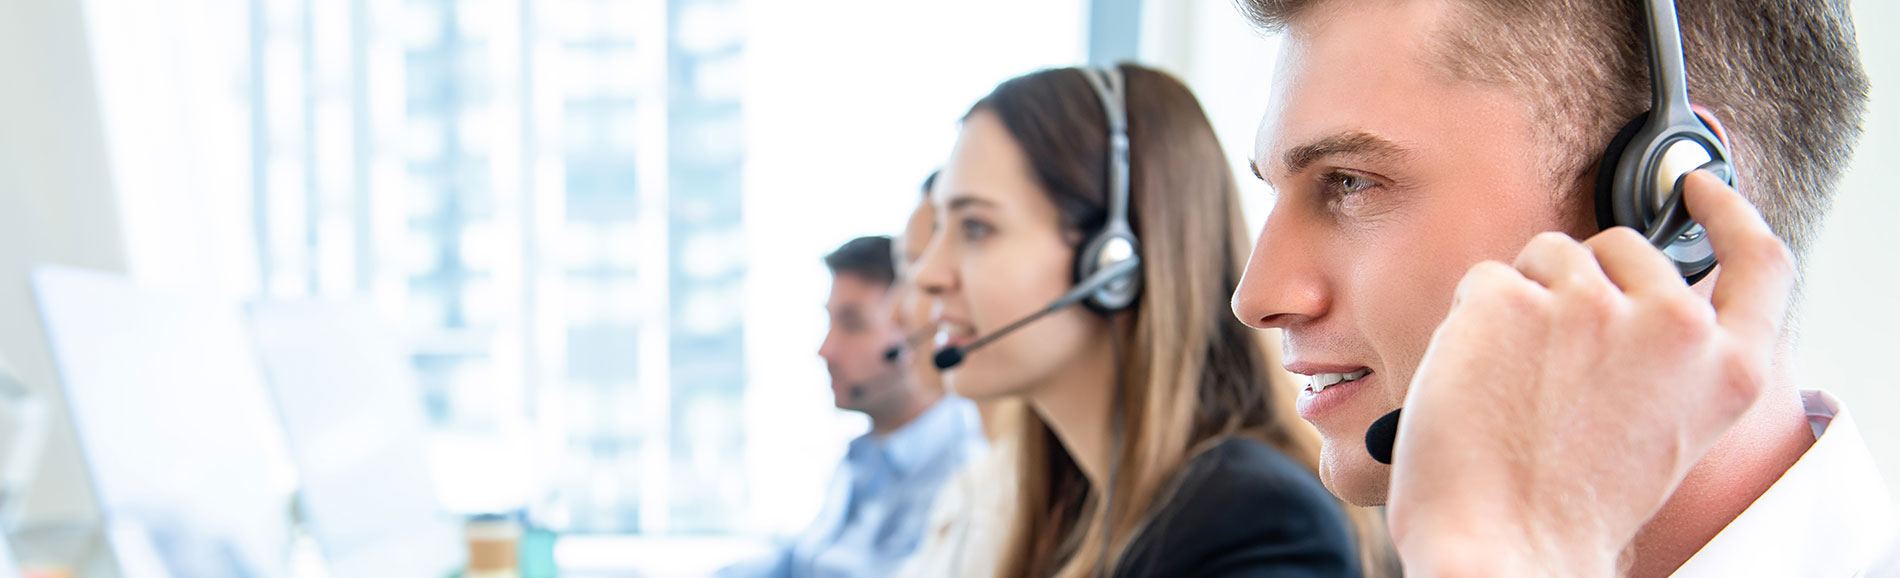 contact centre offer